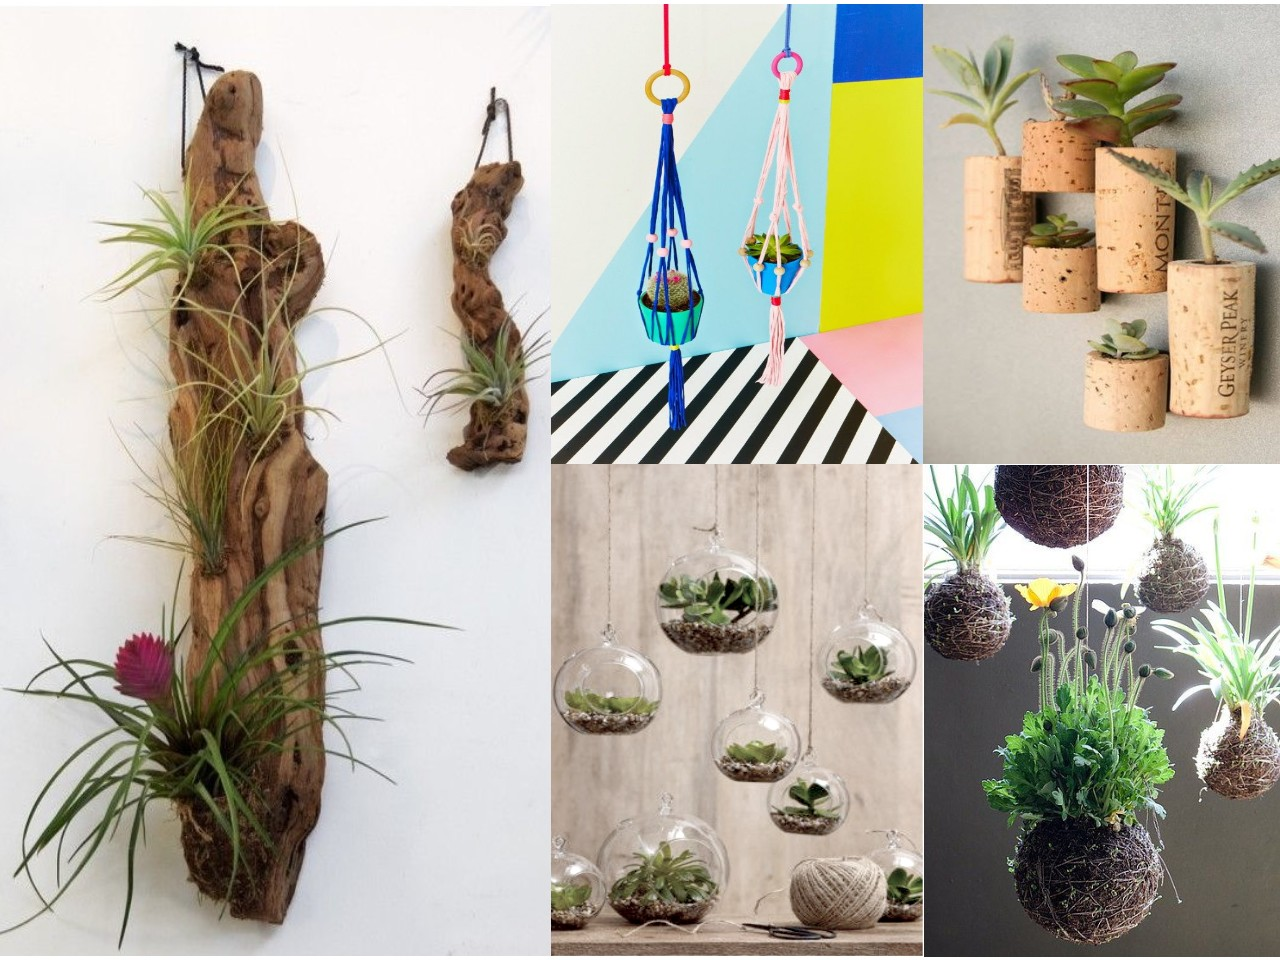 10 ideas de decoraci n con plantas colgantes for Decoracion de jardines con plantas